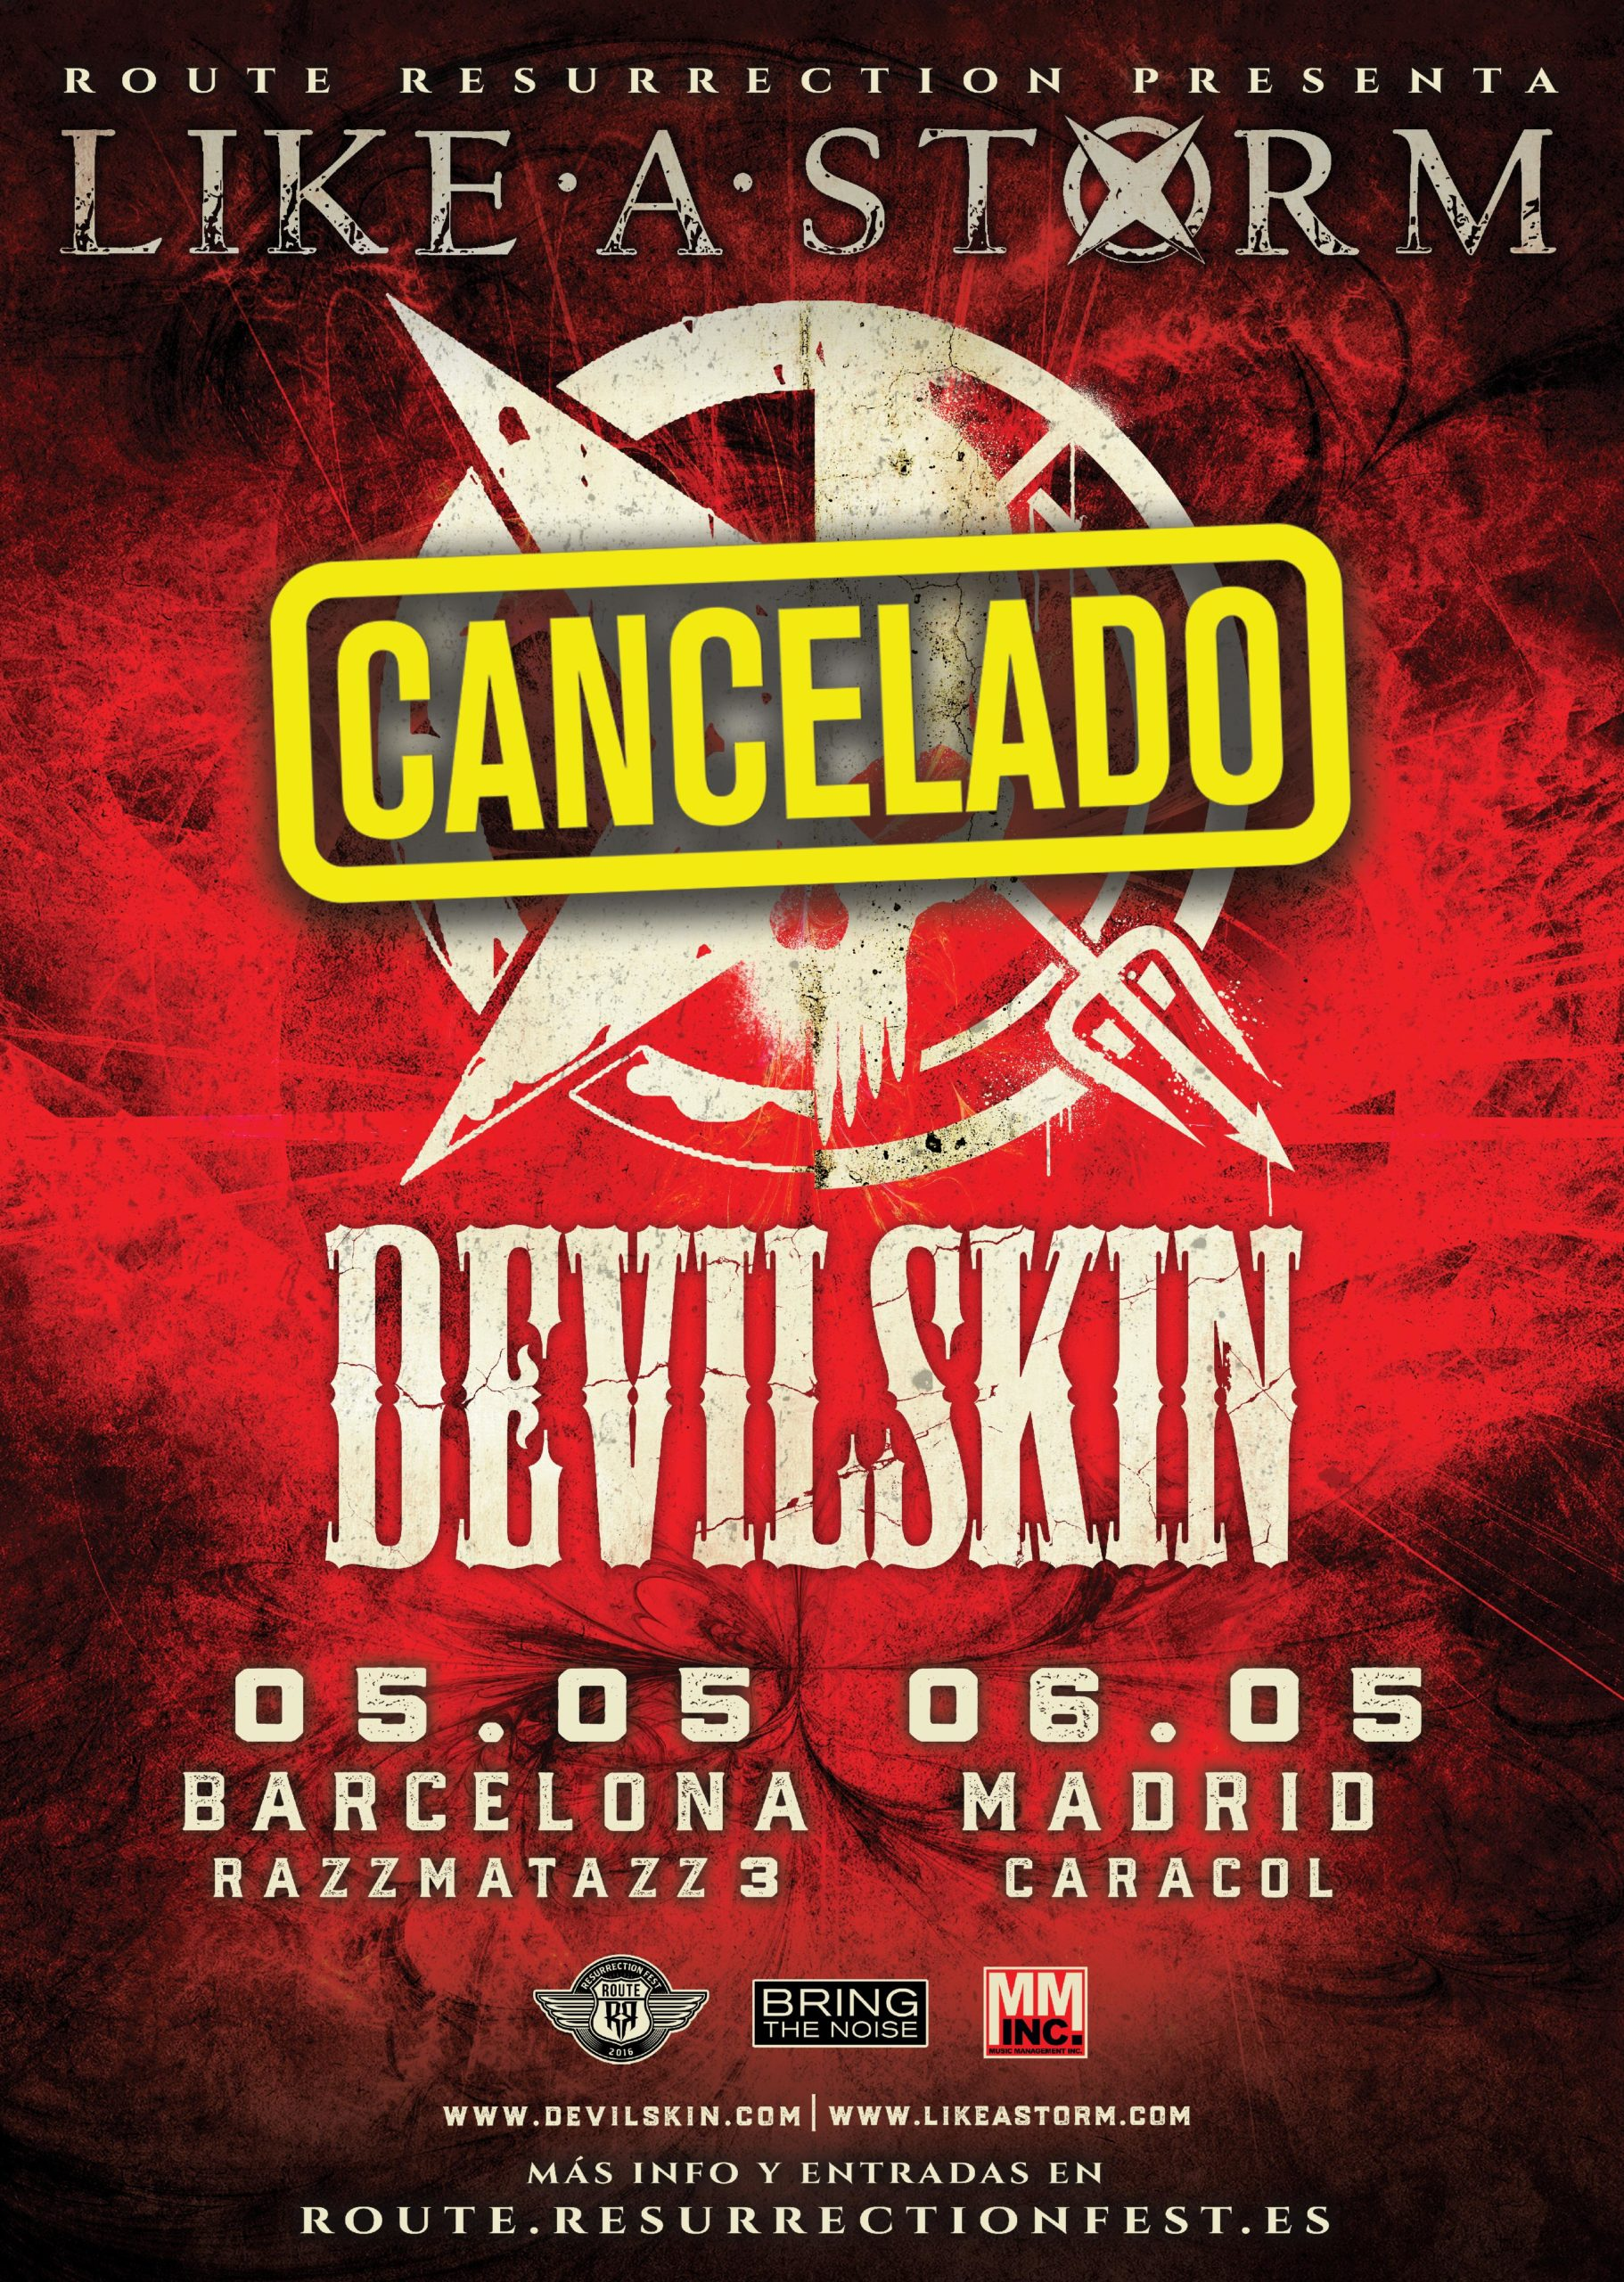 Route Resurrection 2020: Like A Storm + Devilskin (Madrid)